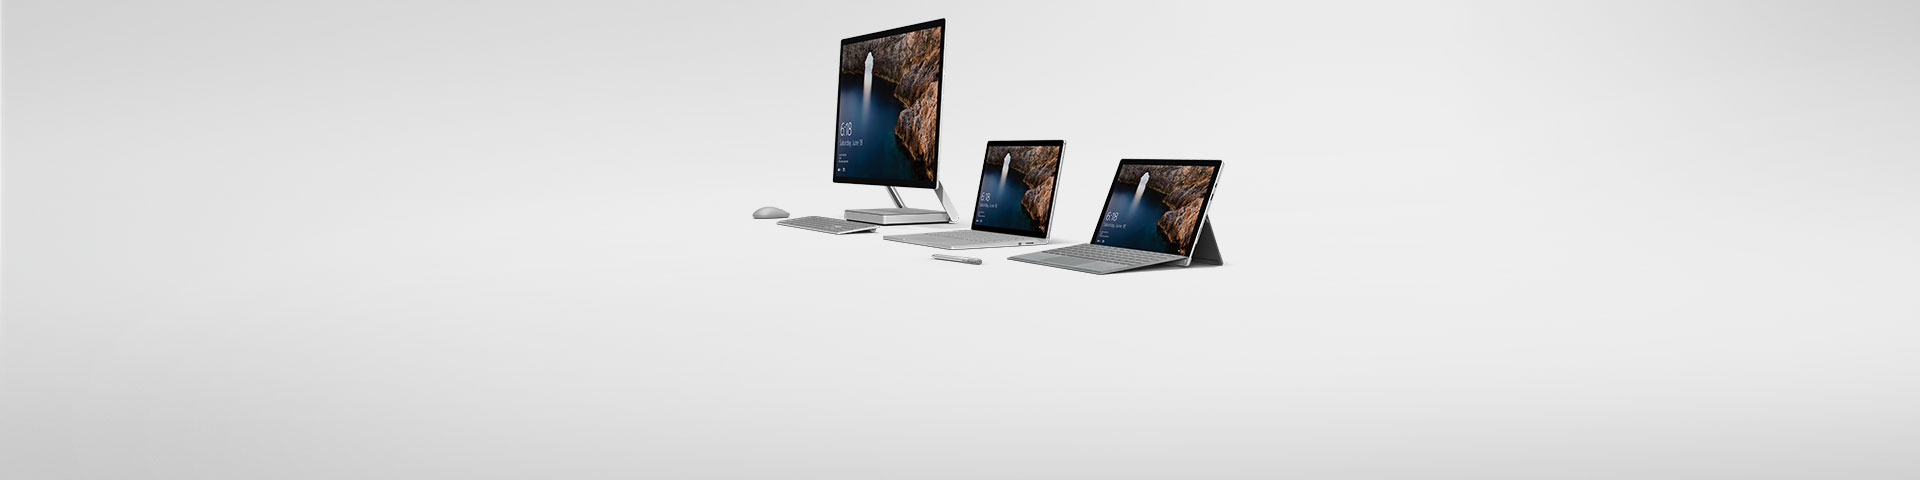 Three Surface devices